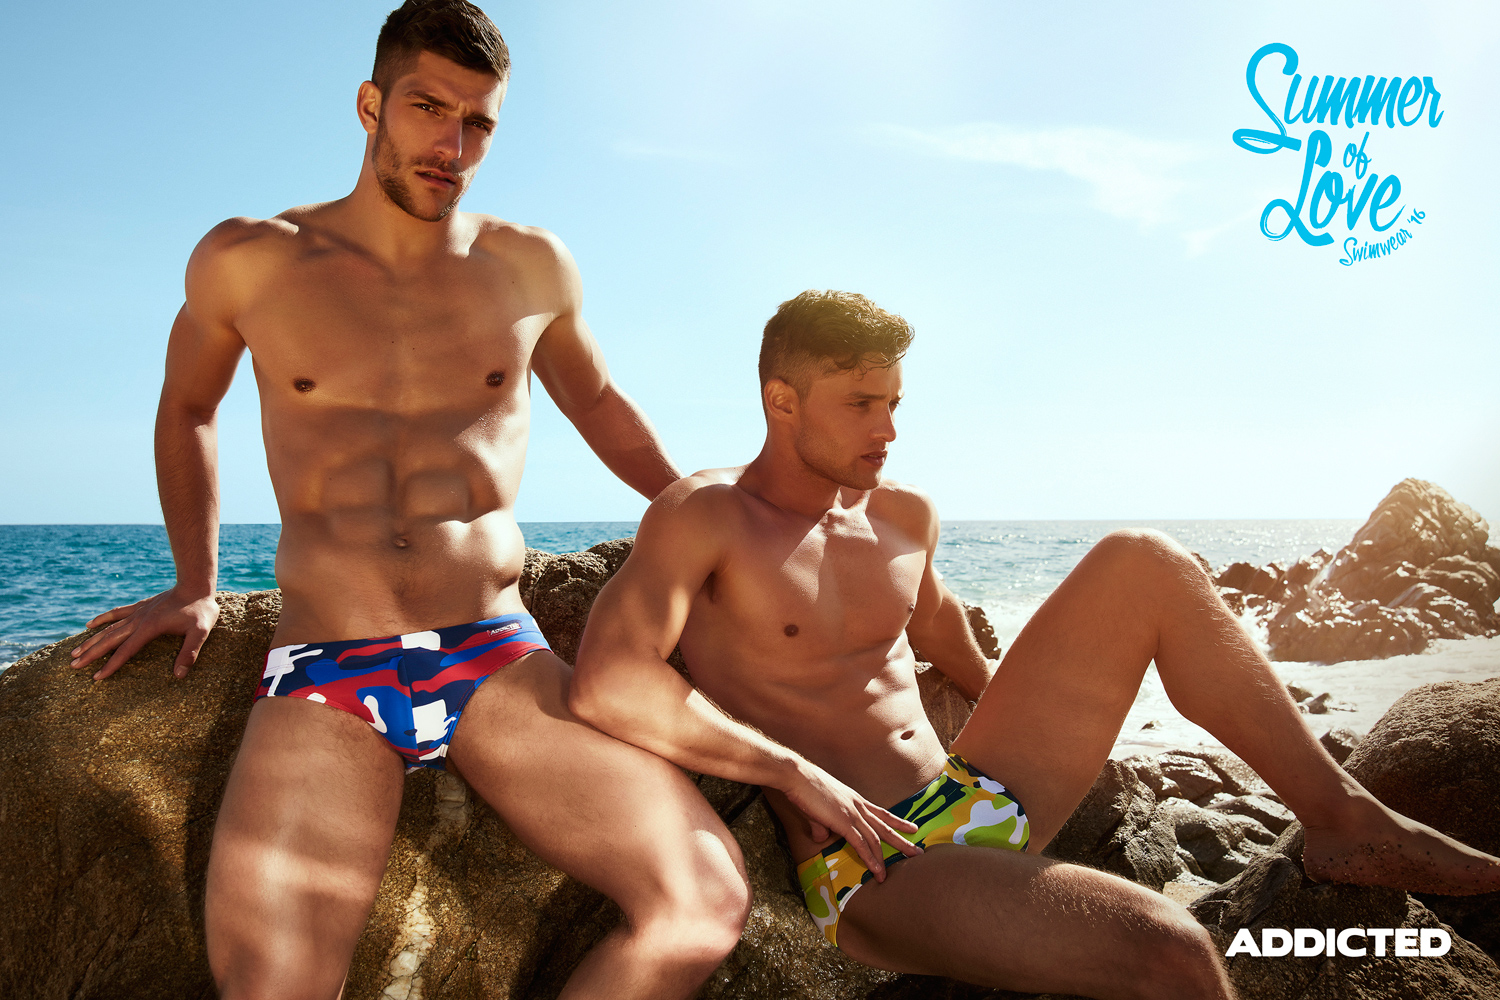 addicted-swimwear-mensunderwearworld.com-16-02